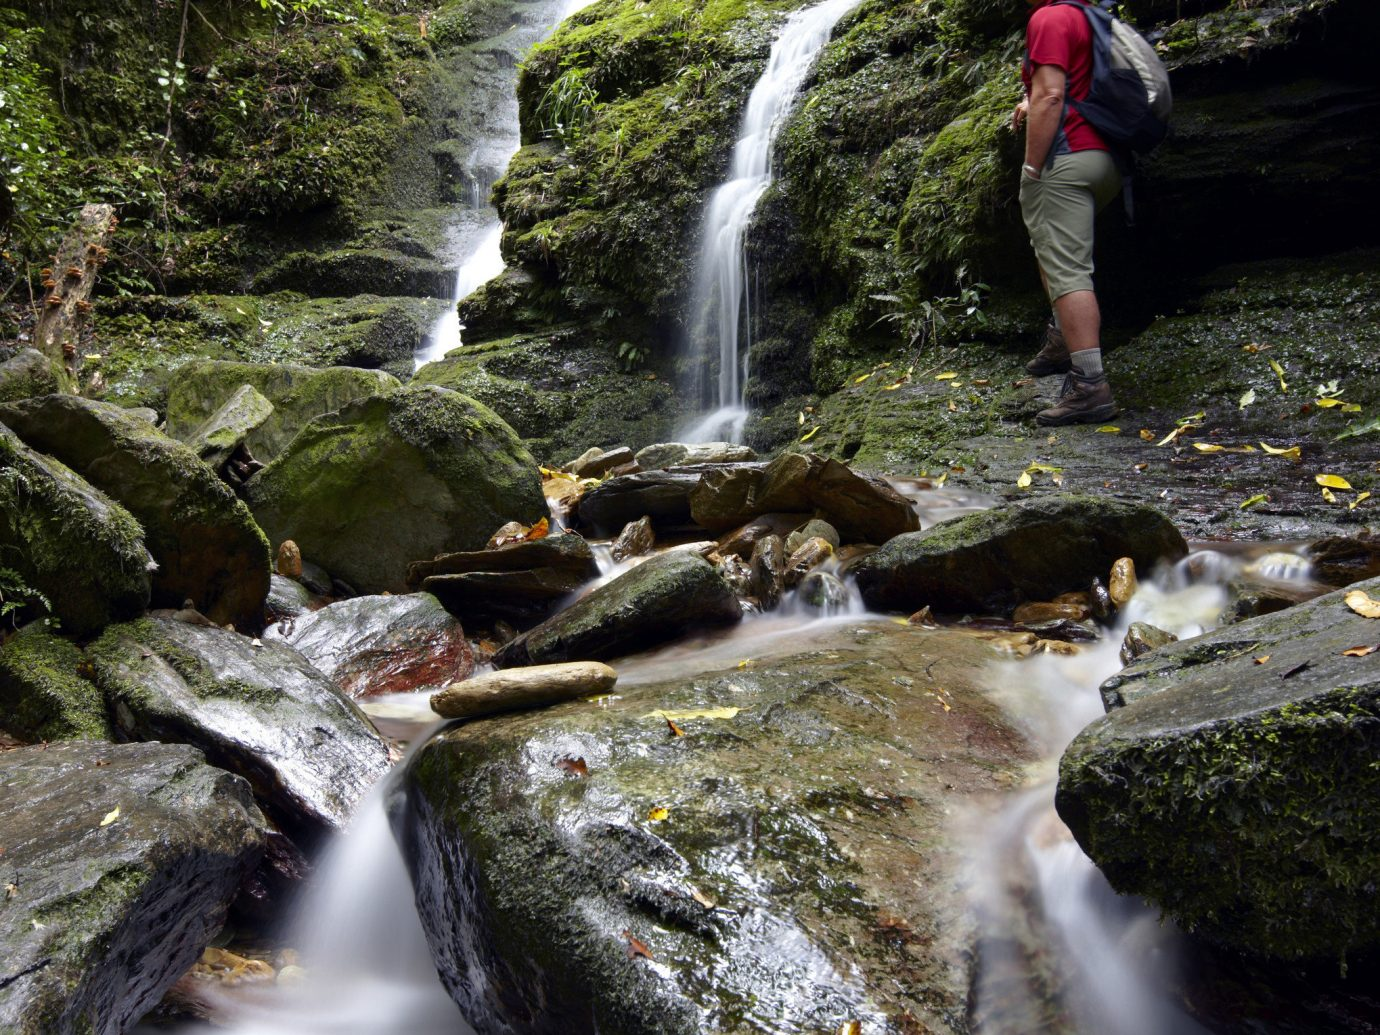 Trip Ideas tree Nature outdoor water Waterfall stream body of water rock creek watercourse wilderness nature reserve water feature plant water resources River leaf rainforest Forest landscape arroyo ravine state park rapid woodland Jungle tributary old growth forest Adventure